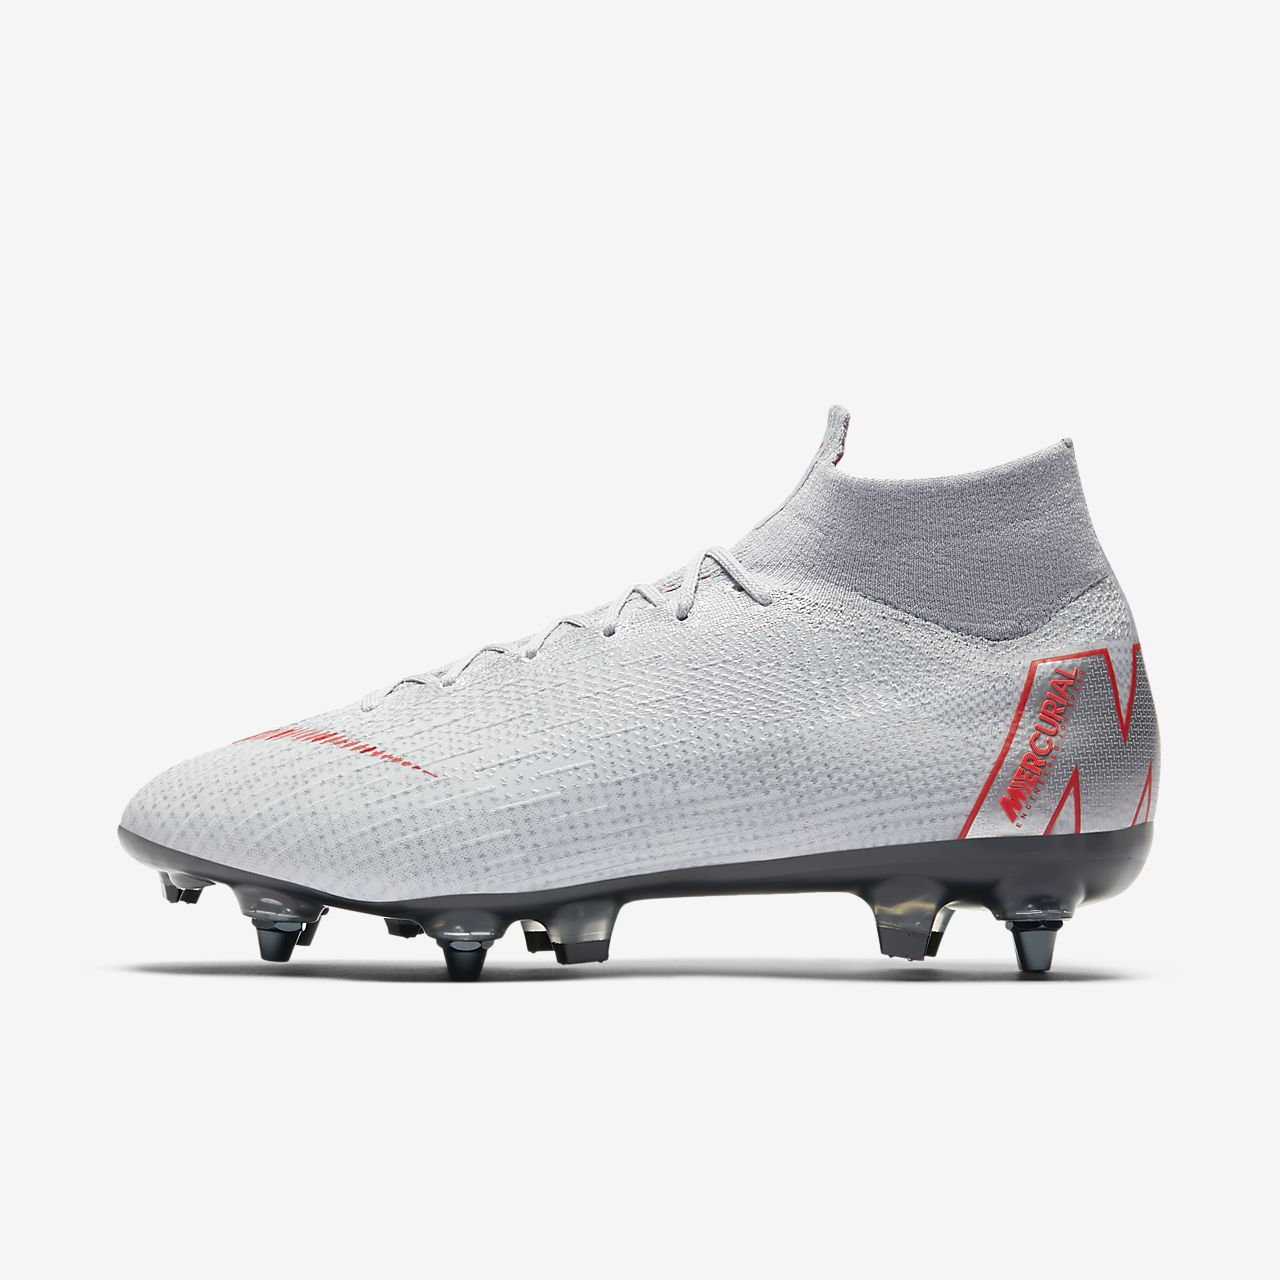 outlet store 4bcd4 90422 nike mercurial superfly 360 launch